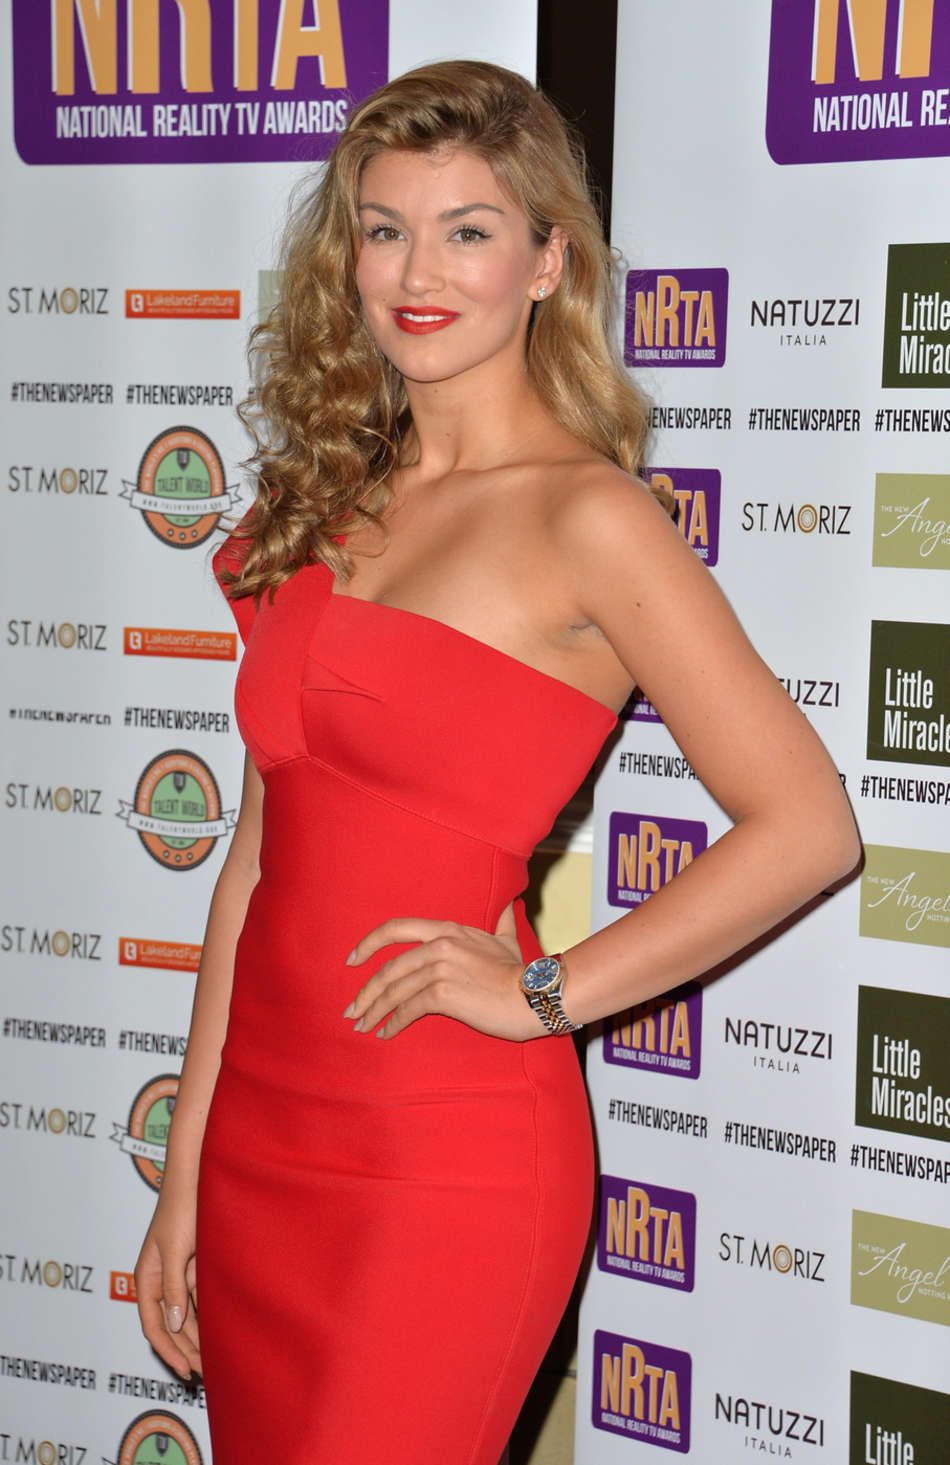 Amy Willerton in Red Dress at 2014 National Reality TV Awards in London